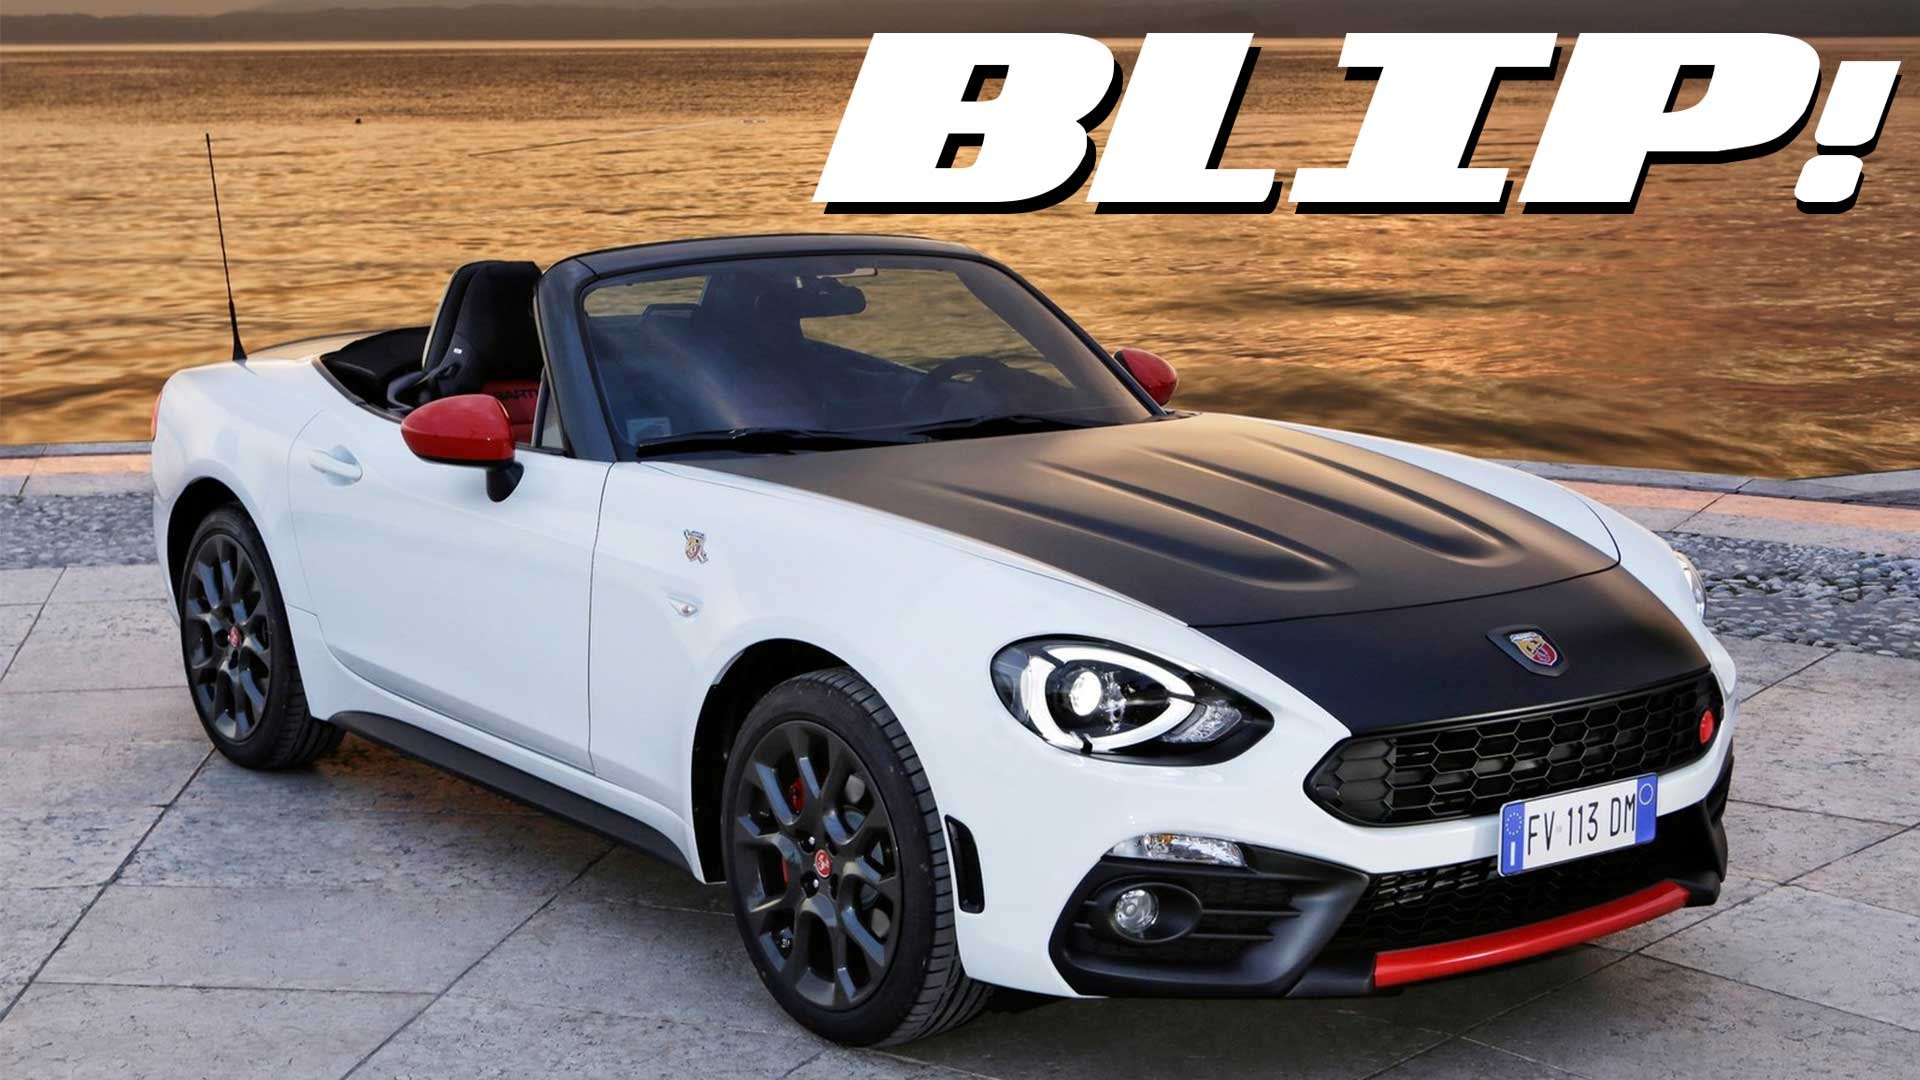 abarth 124 spider priced from 29 565 in britain listen. Black Bedroom Furniture Sets. Home Design Ideas